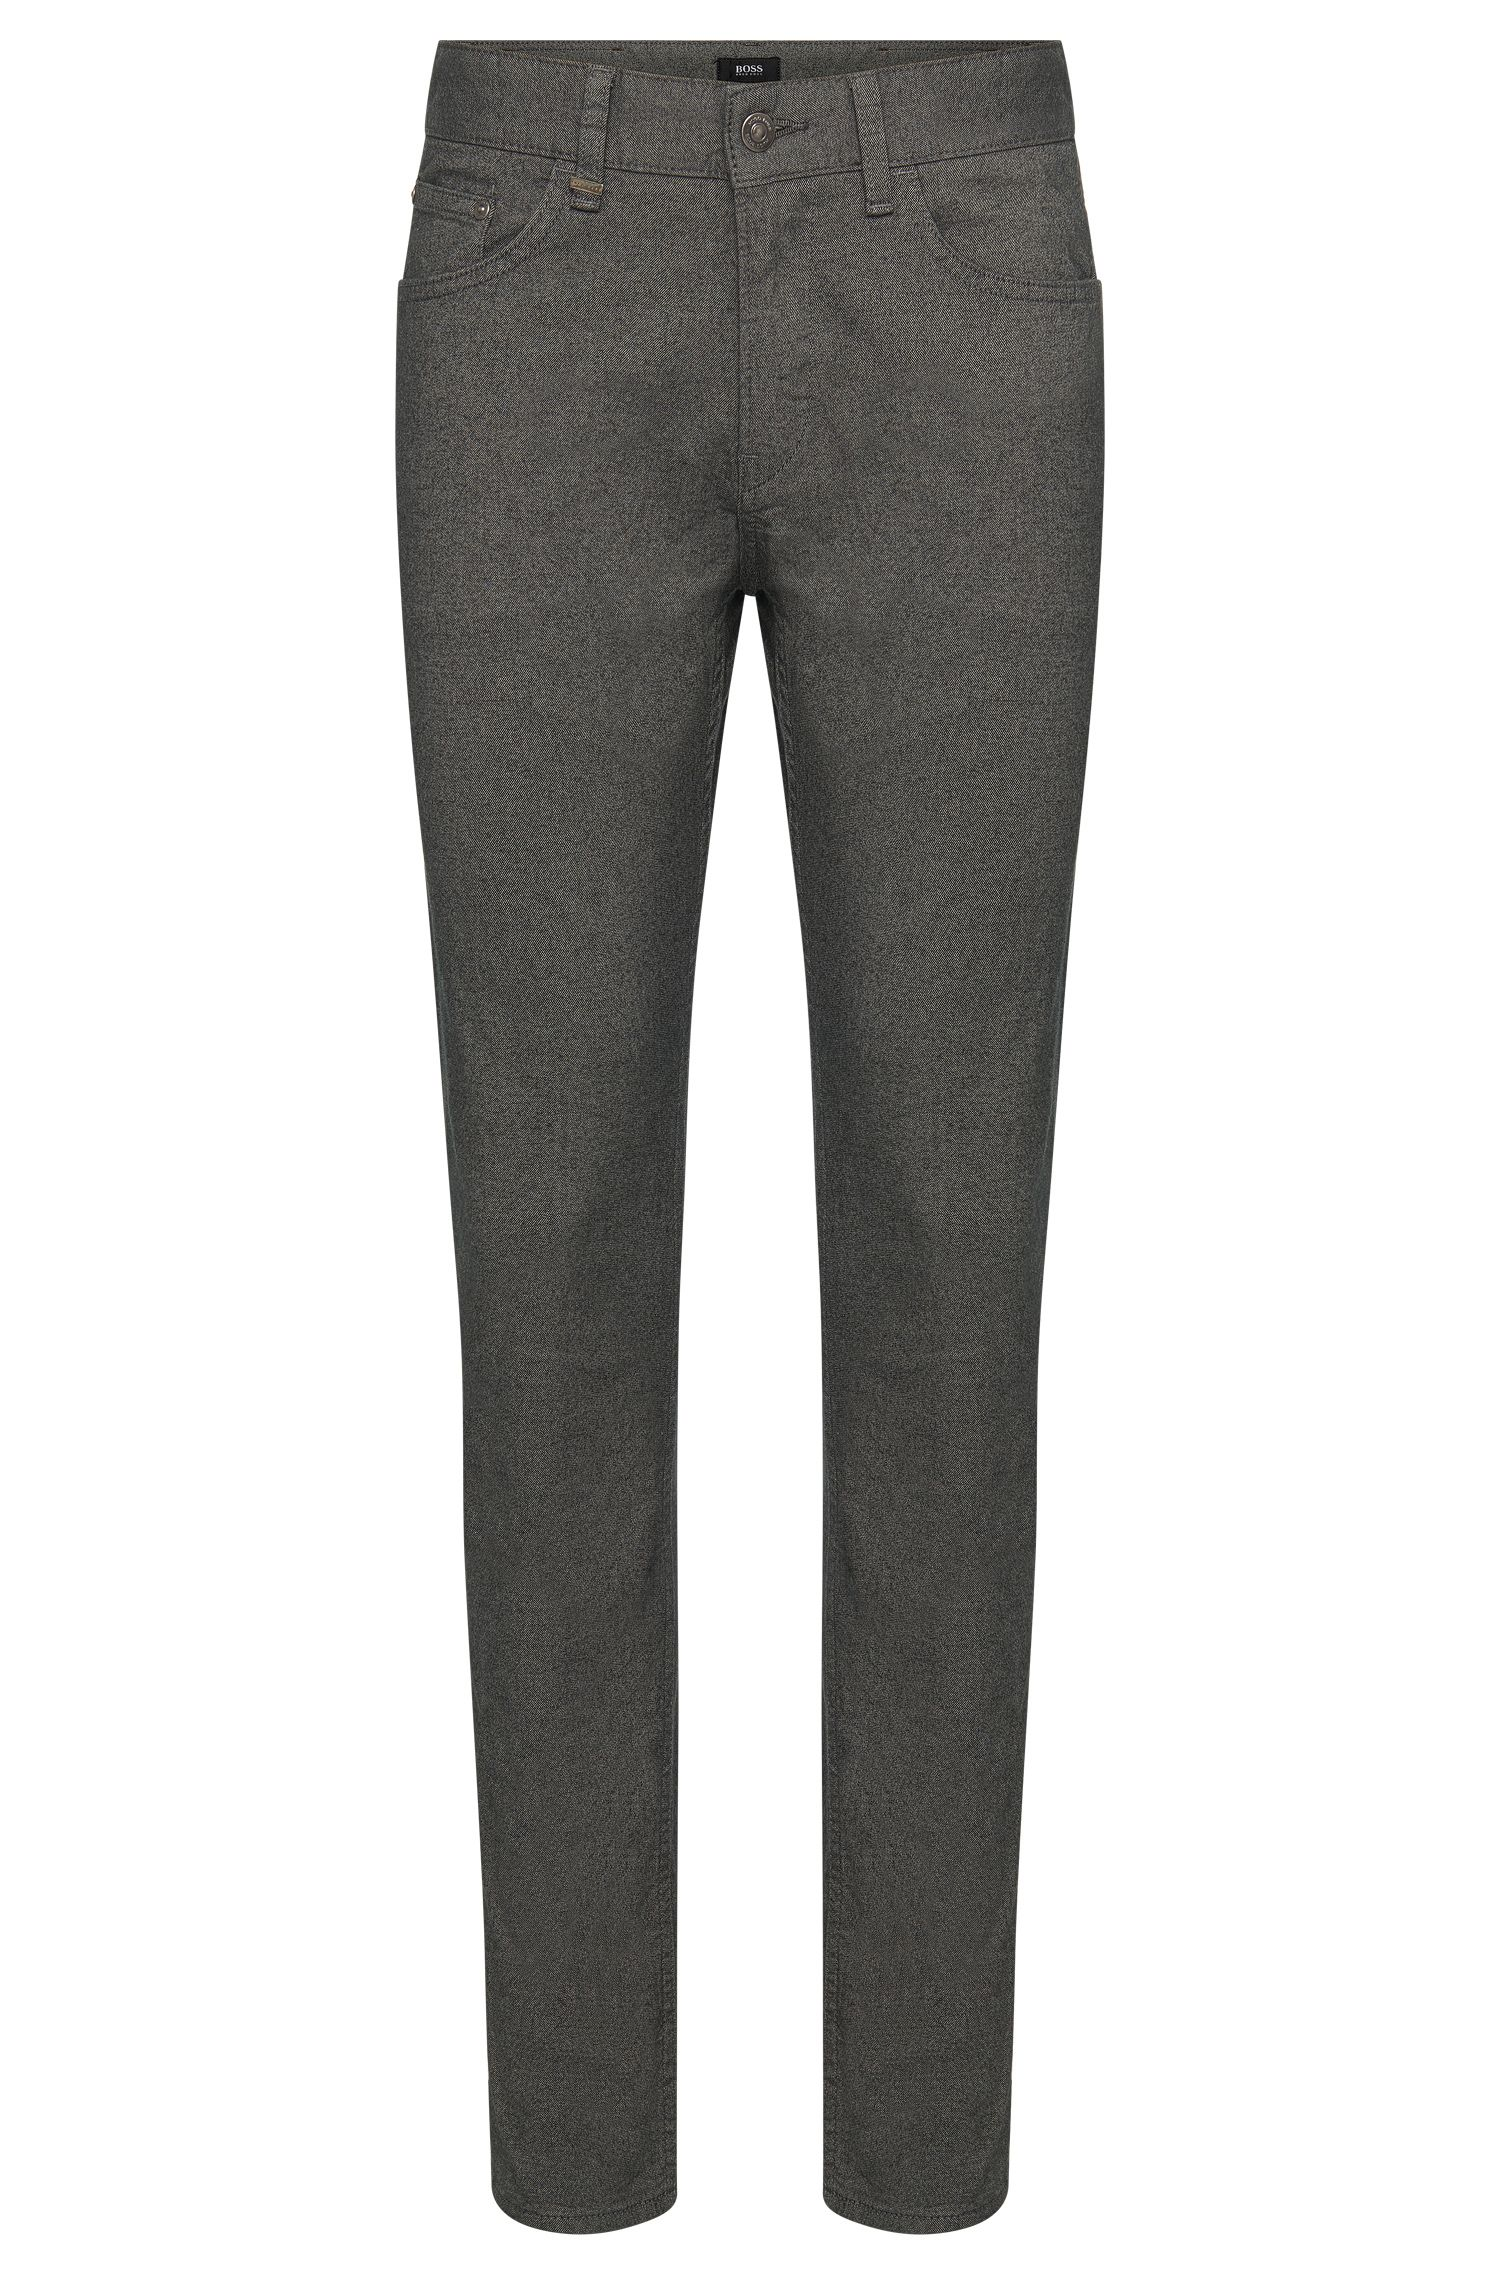 Pantalon Slim-Fit en coton stretch de style cinq poches : « Delaware3-20 »